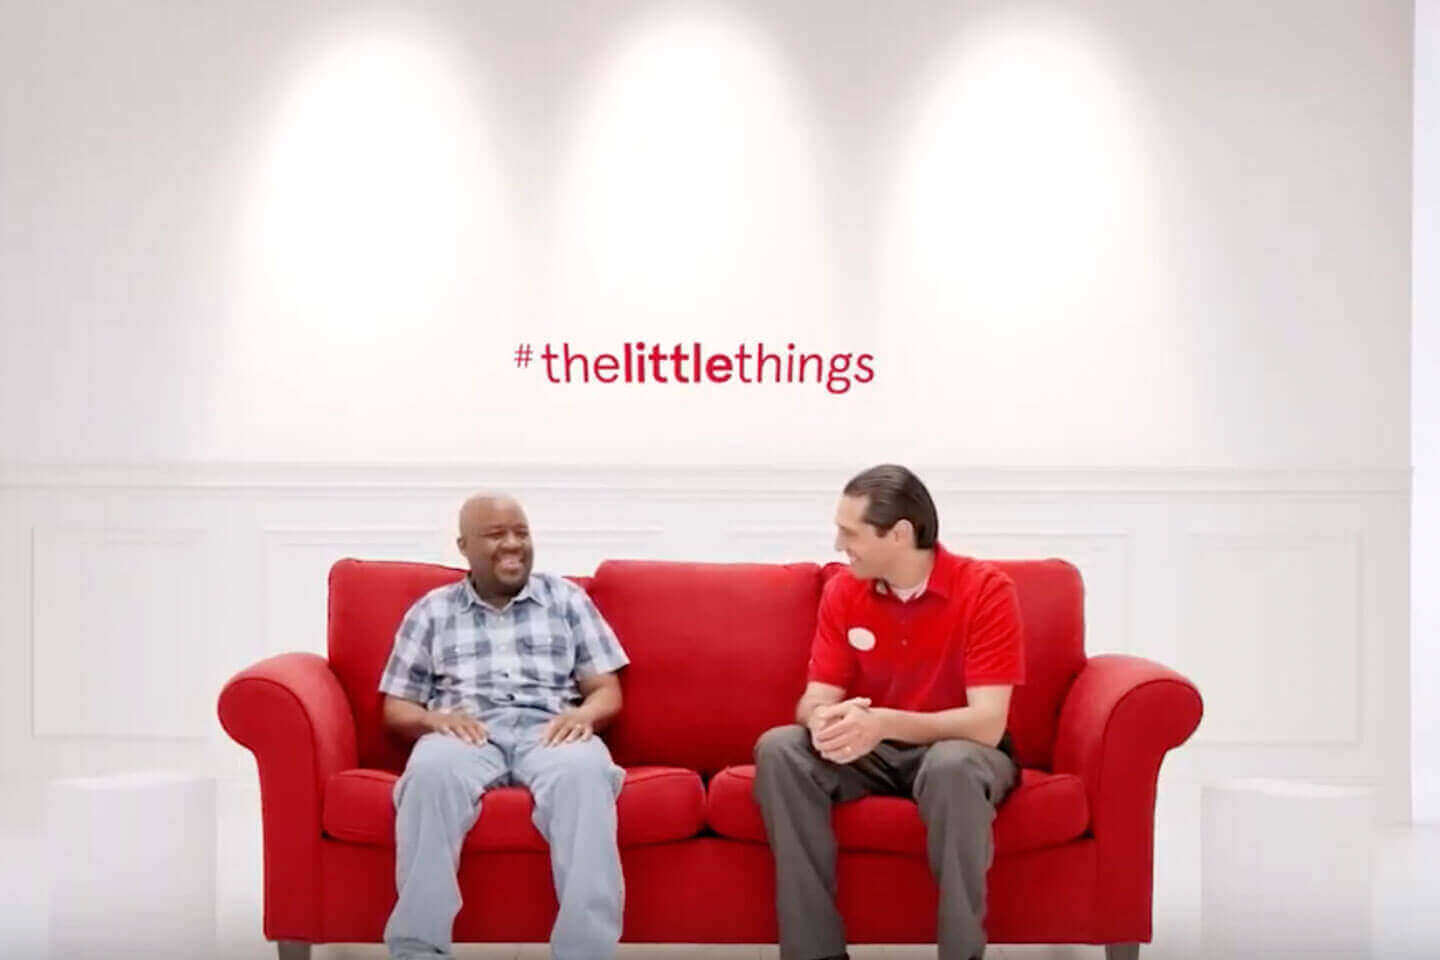 Chick-fil-A employee and customer sitting on red couch